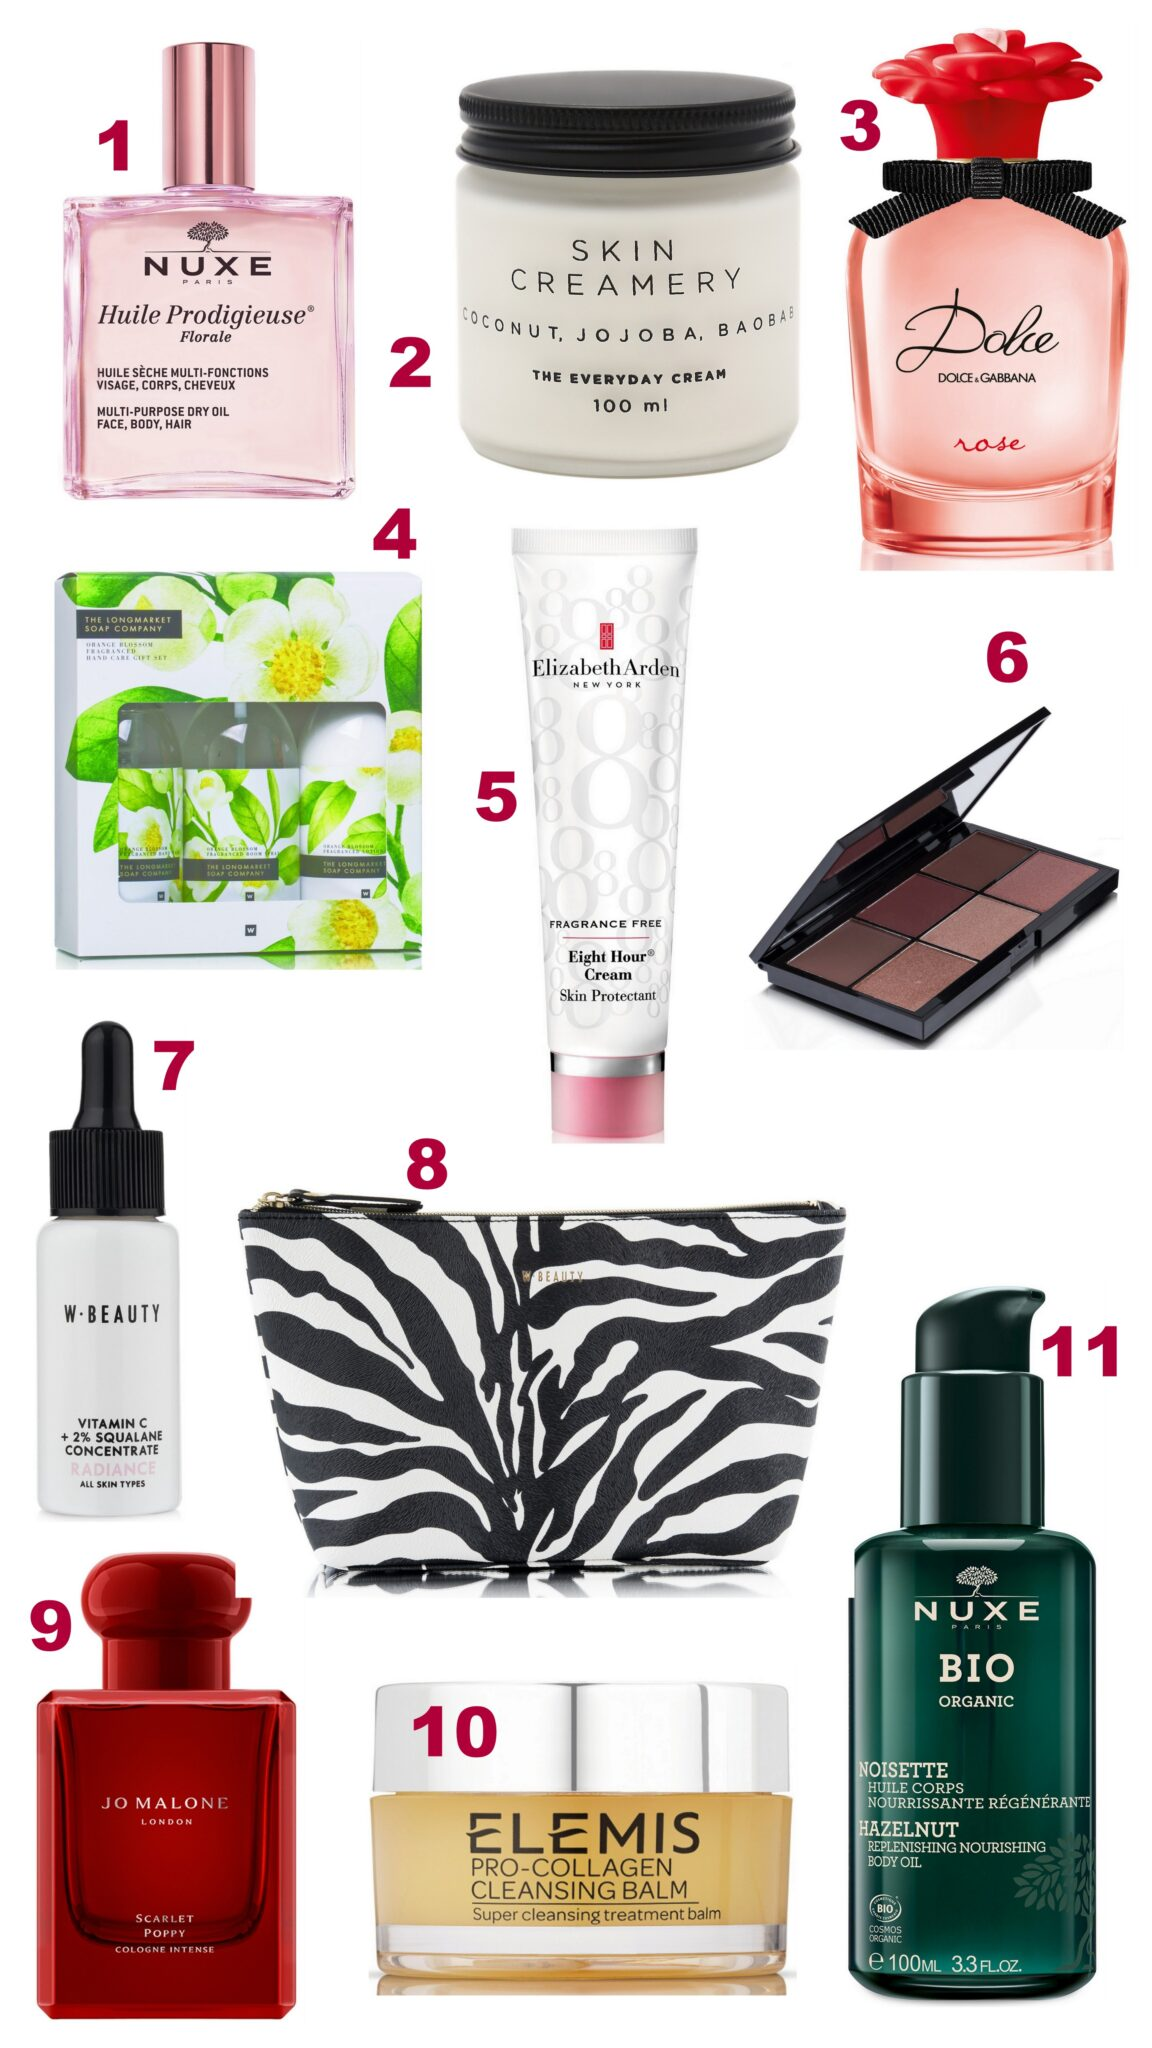 MOTHER'S DAY GIFT GUIDE - BEAUTY